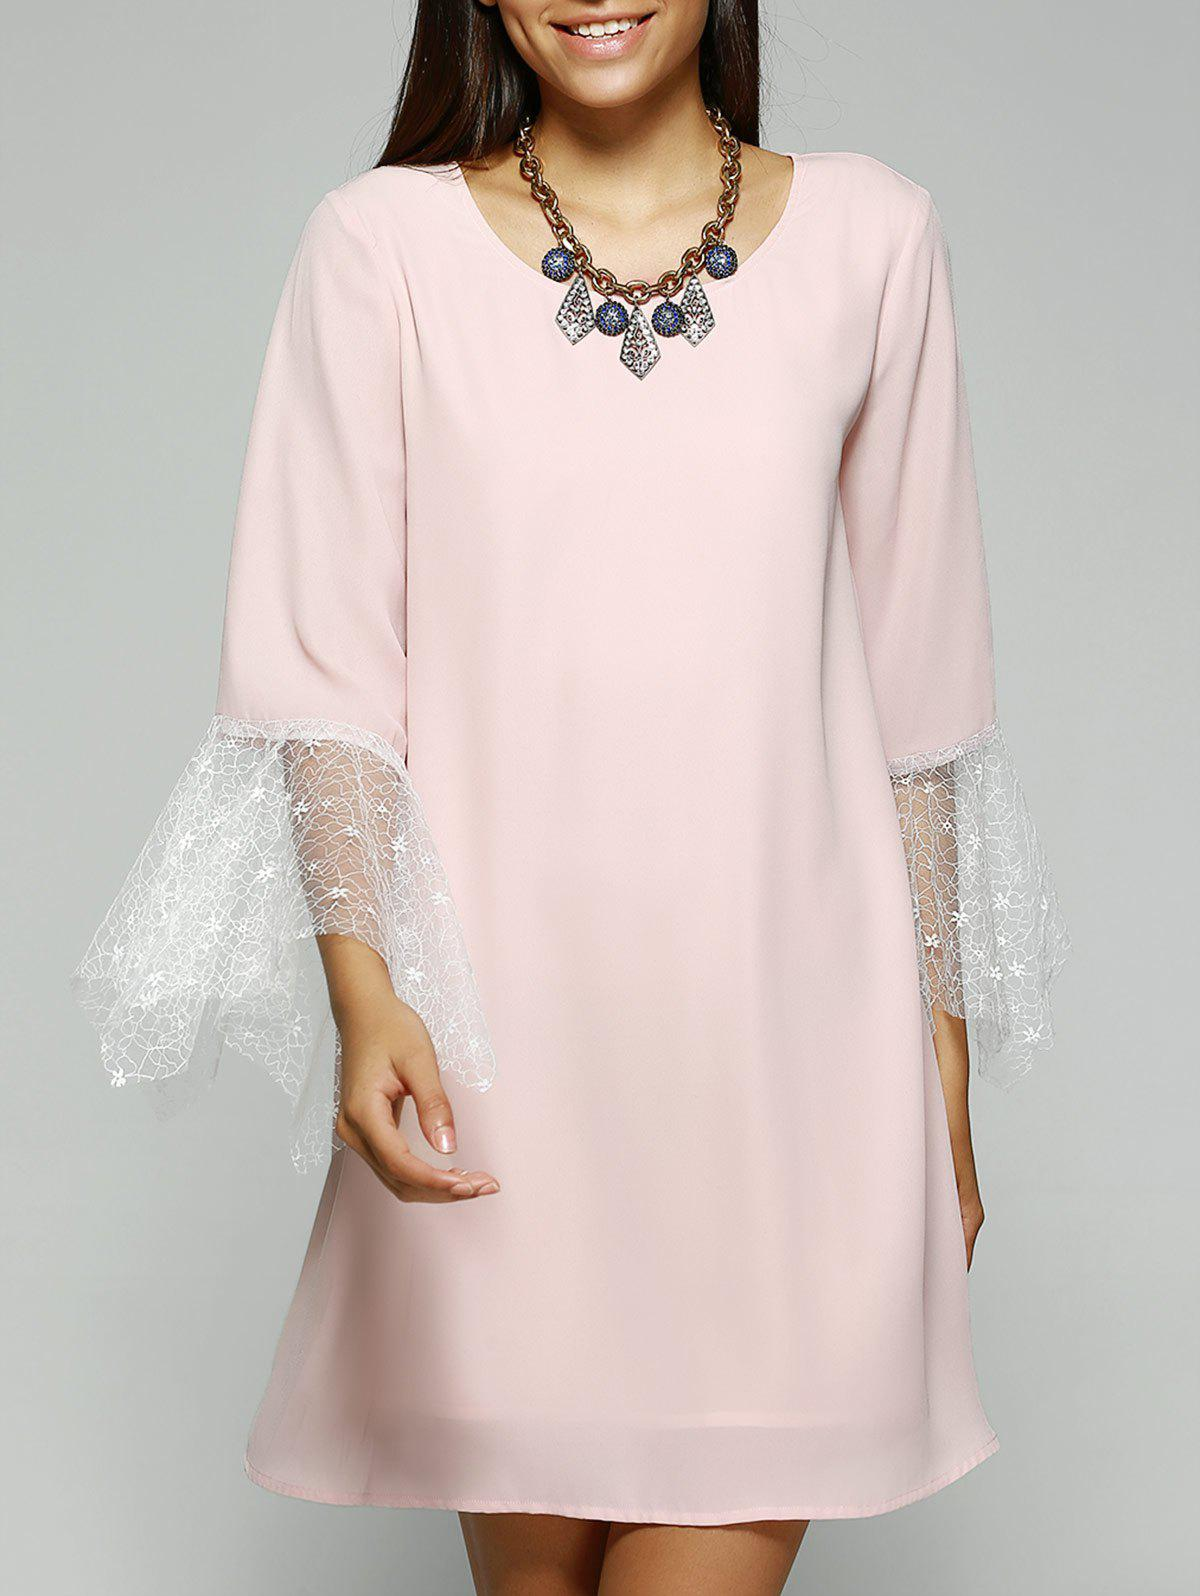 Fashionable Jewel Neck Laced Pink Dress For Women